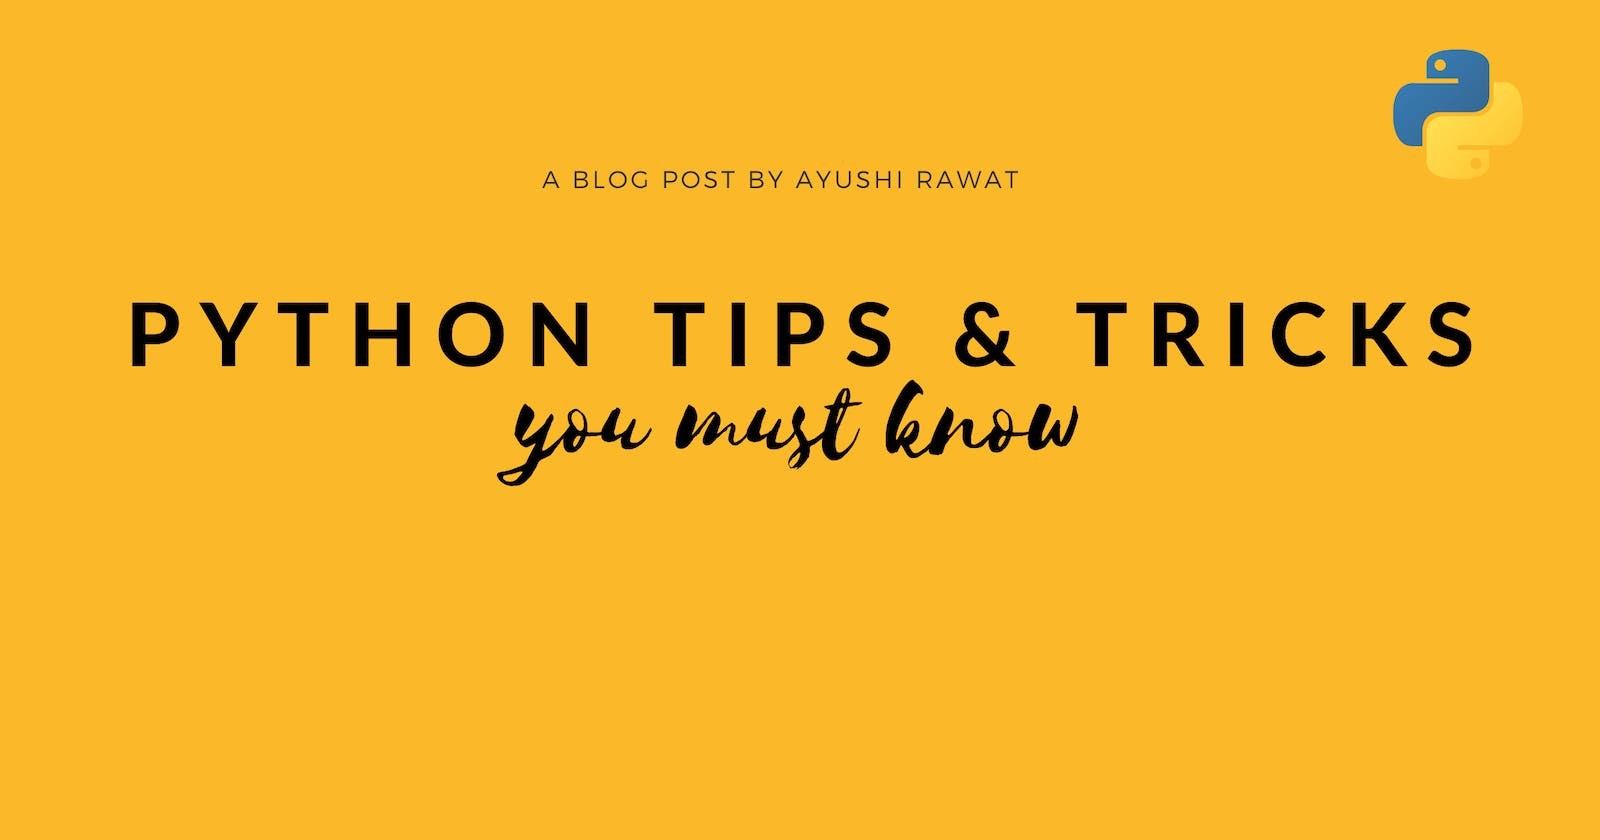 12 Python Tips & Tricks You must know